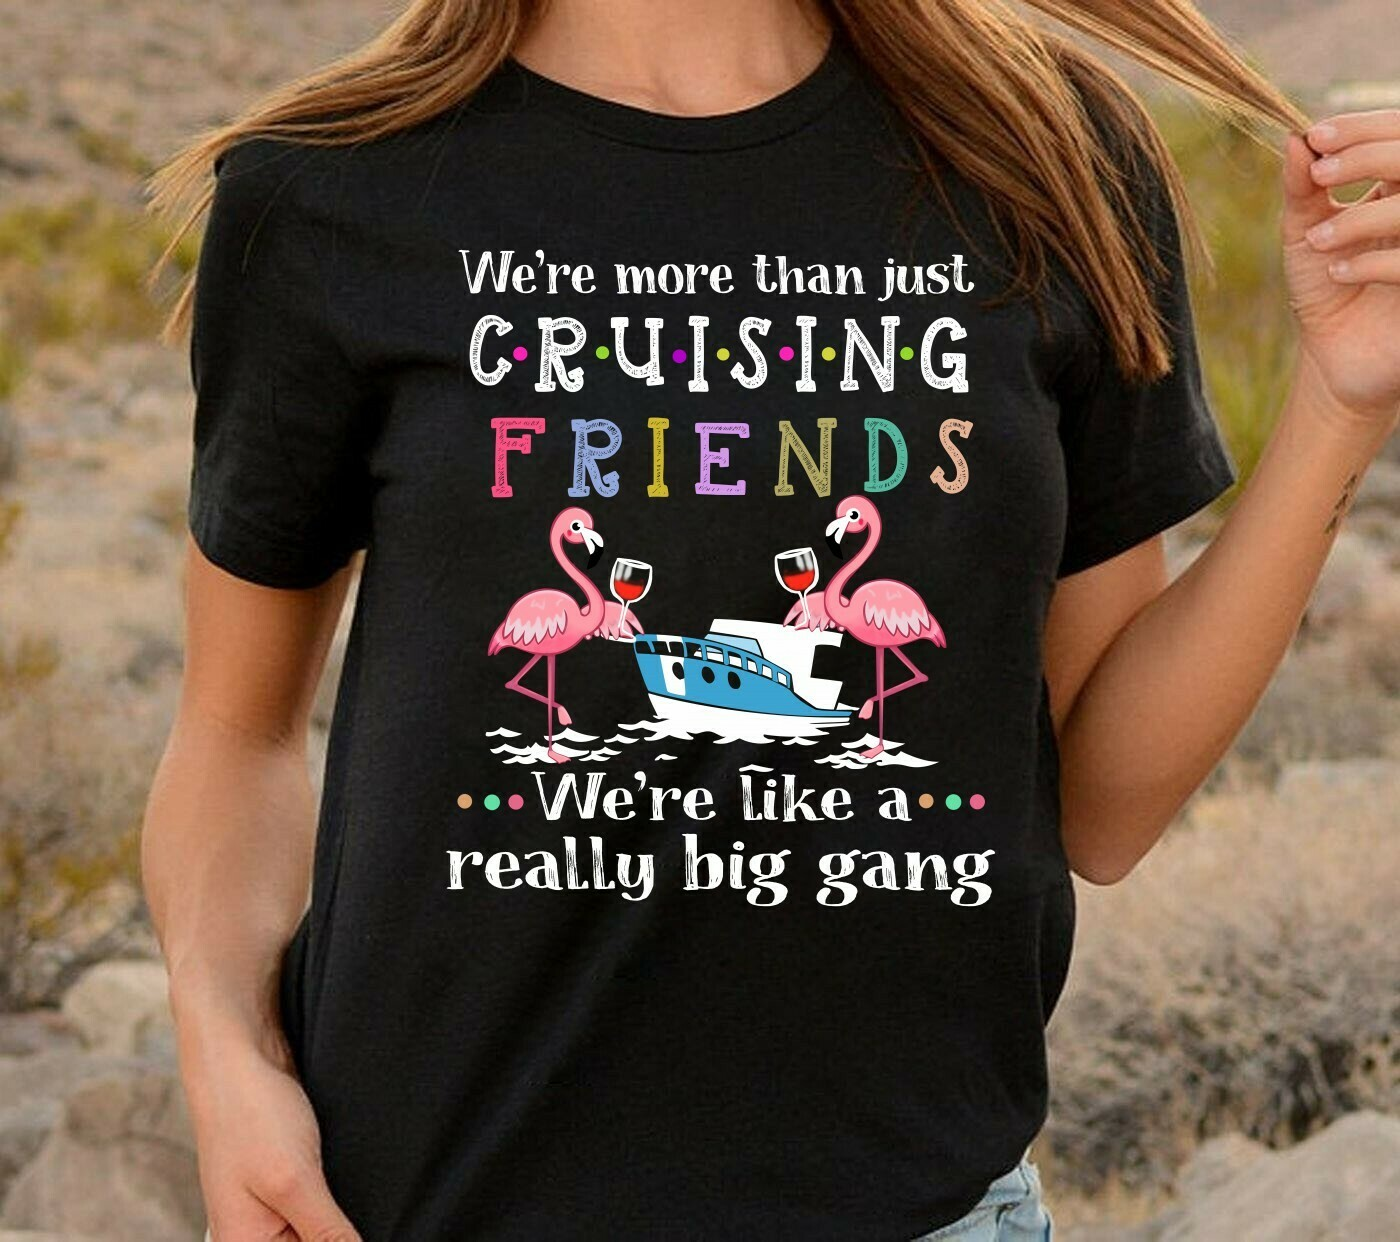 We're More Than Just Cruising Friends Really Big Gang Funny Flamingo Drink Wine Party Vacation Gift For Friends Team Group Girls T Shirt Long Sleeve Sweatshirt Hoodie Jolly Family Gifts